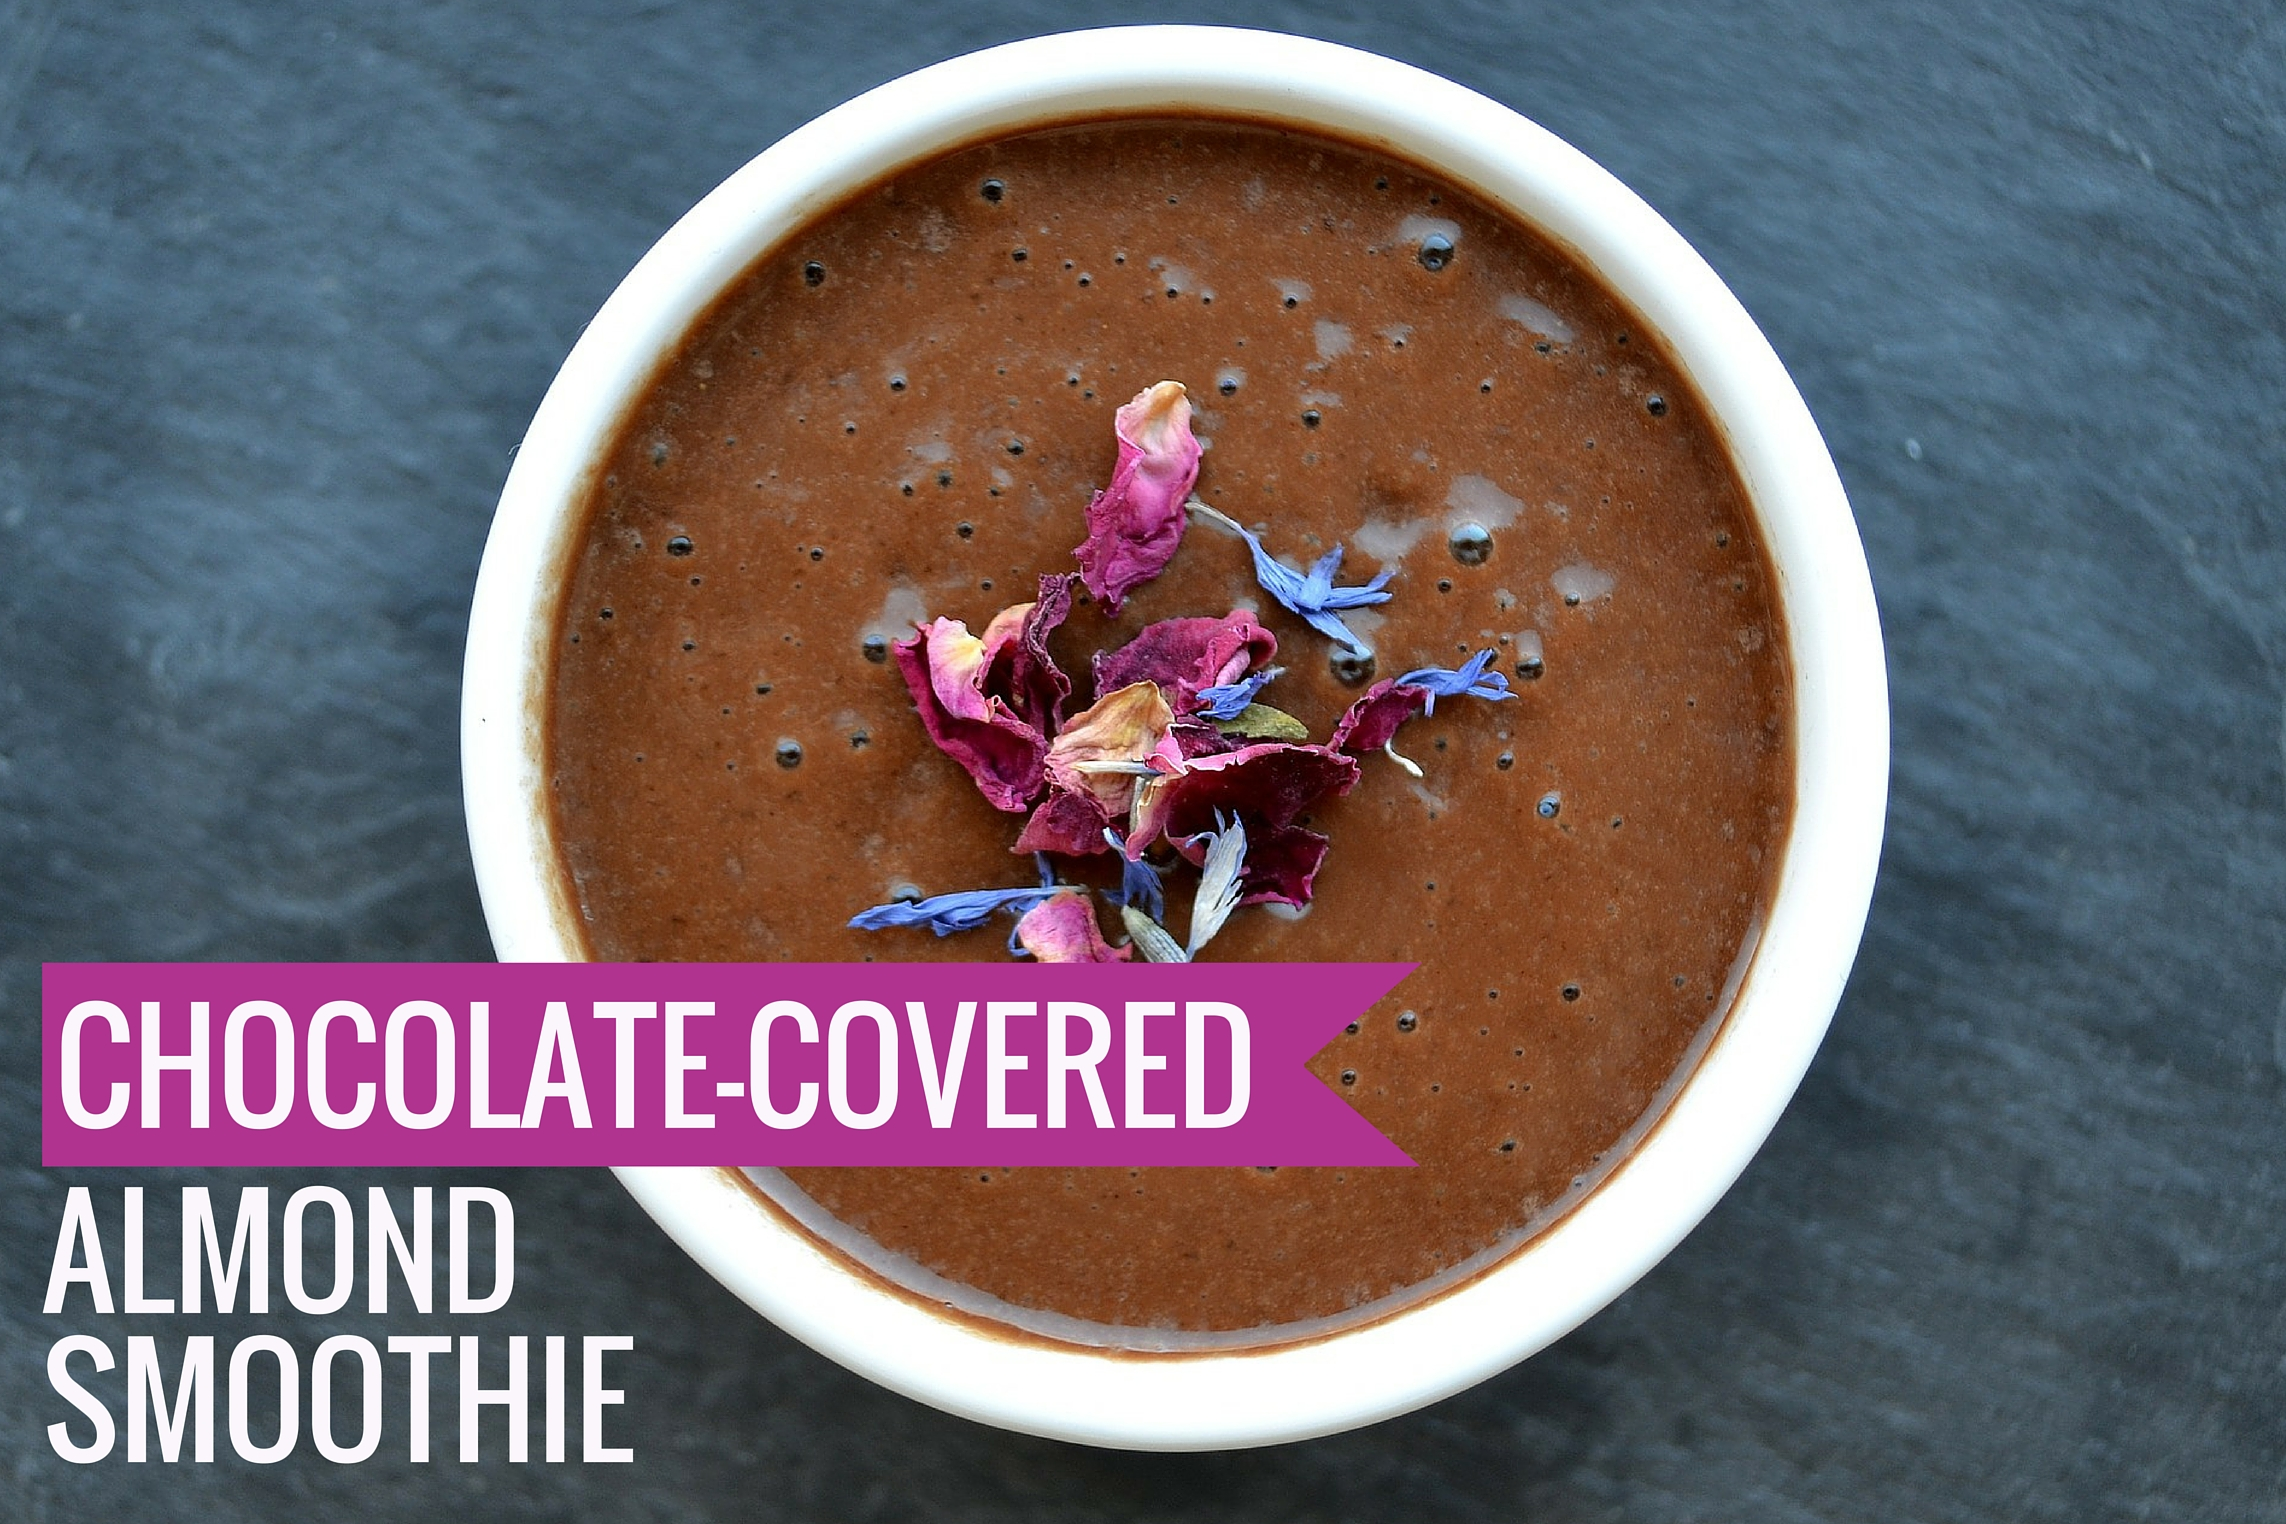 Chocolate Covered Almond Smoothie Dr. Oz Recipe